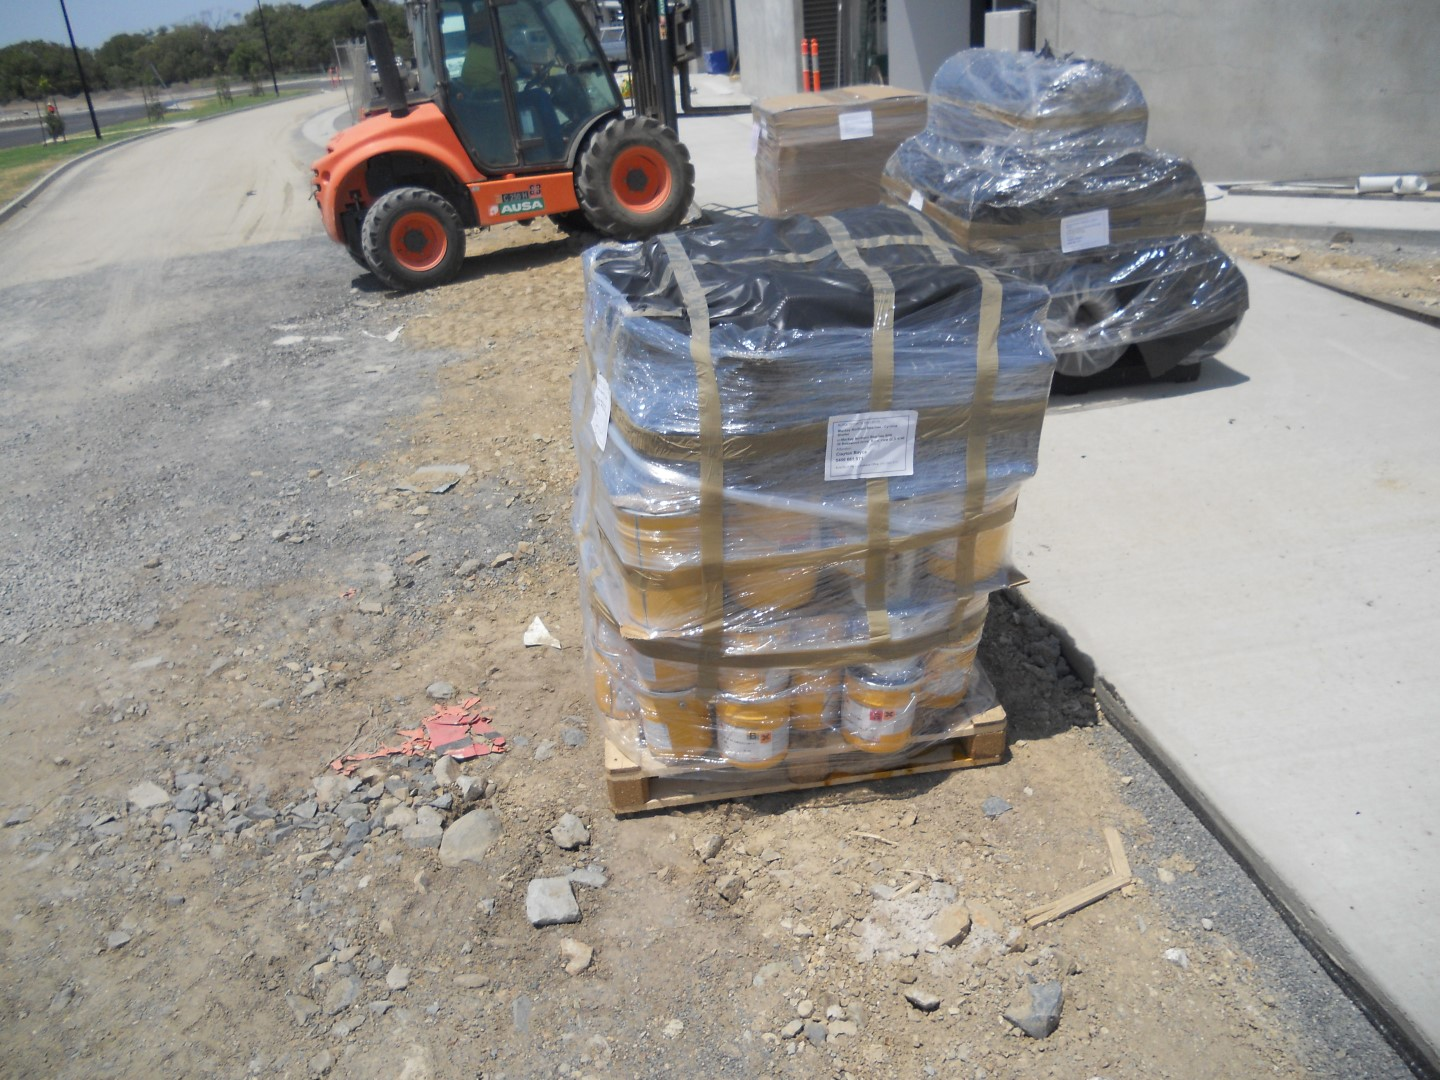 Small pallet load